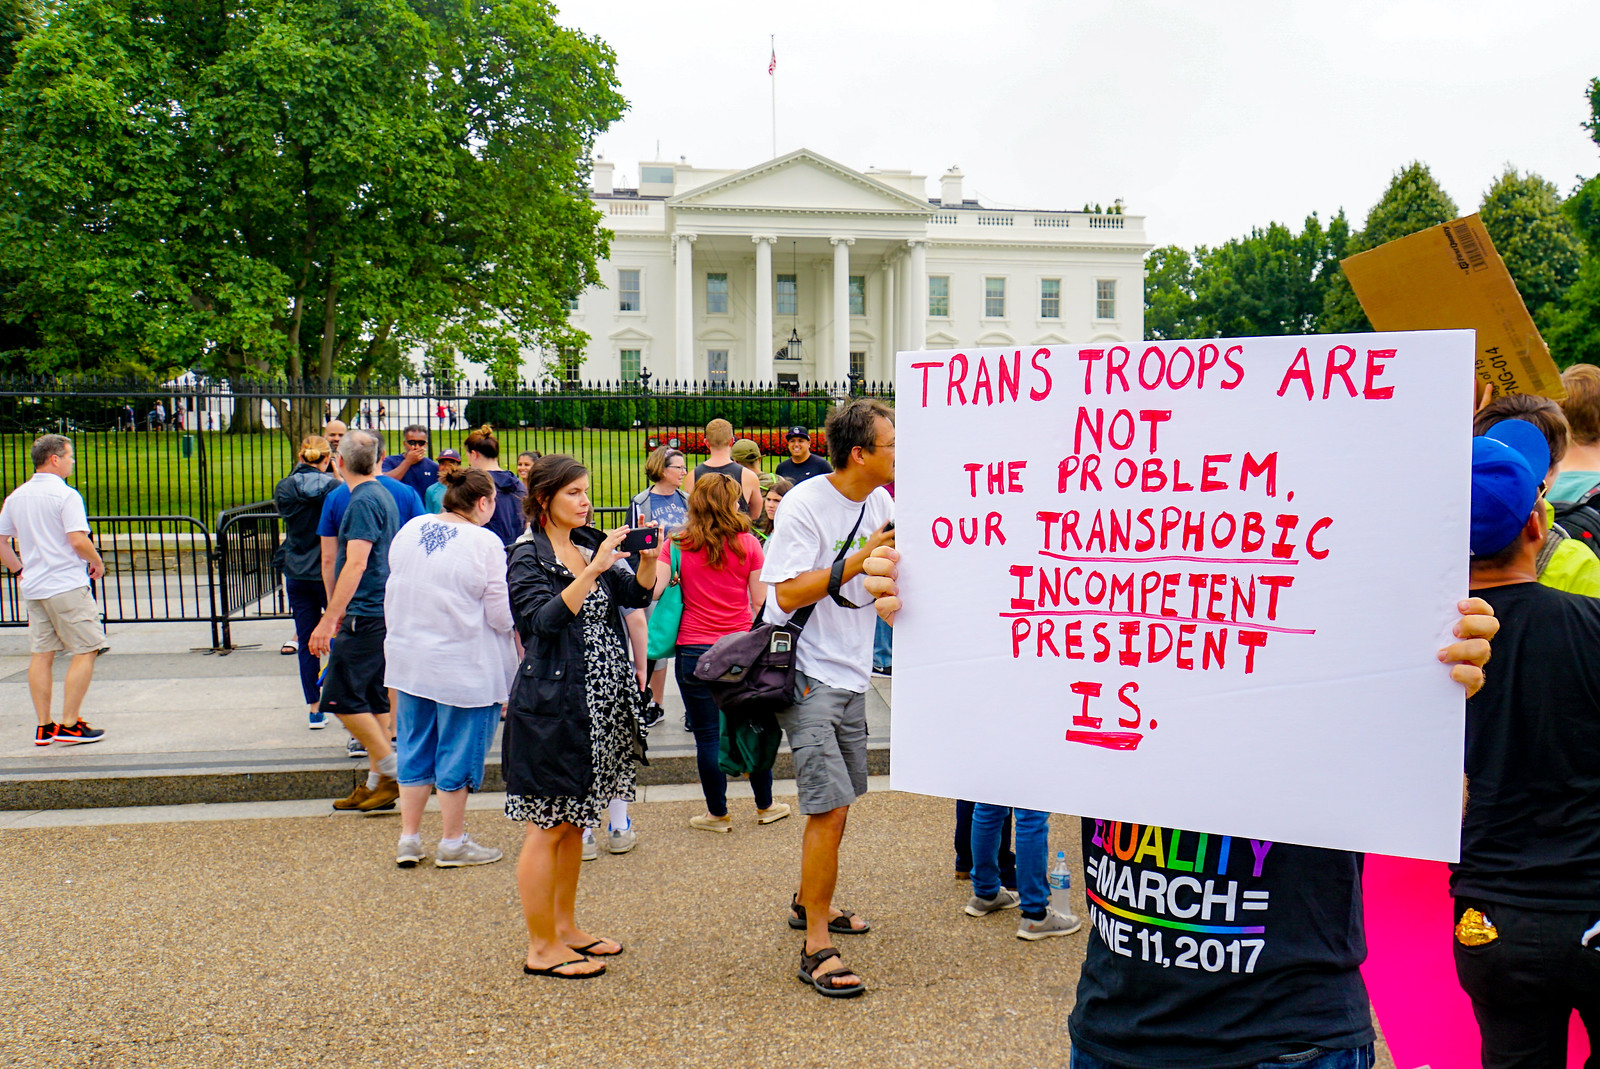 2017.07.29 Stop Transgender Military Ban, Washington, DC USA 7712